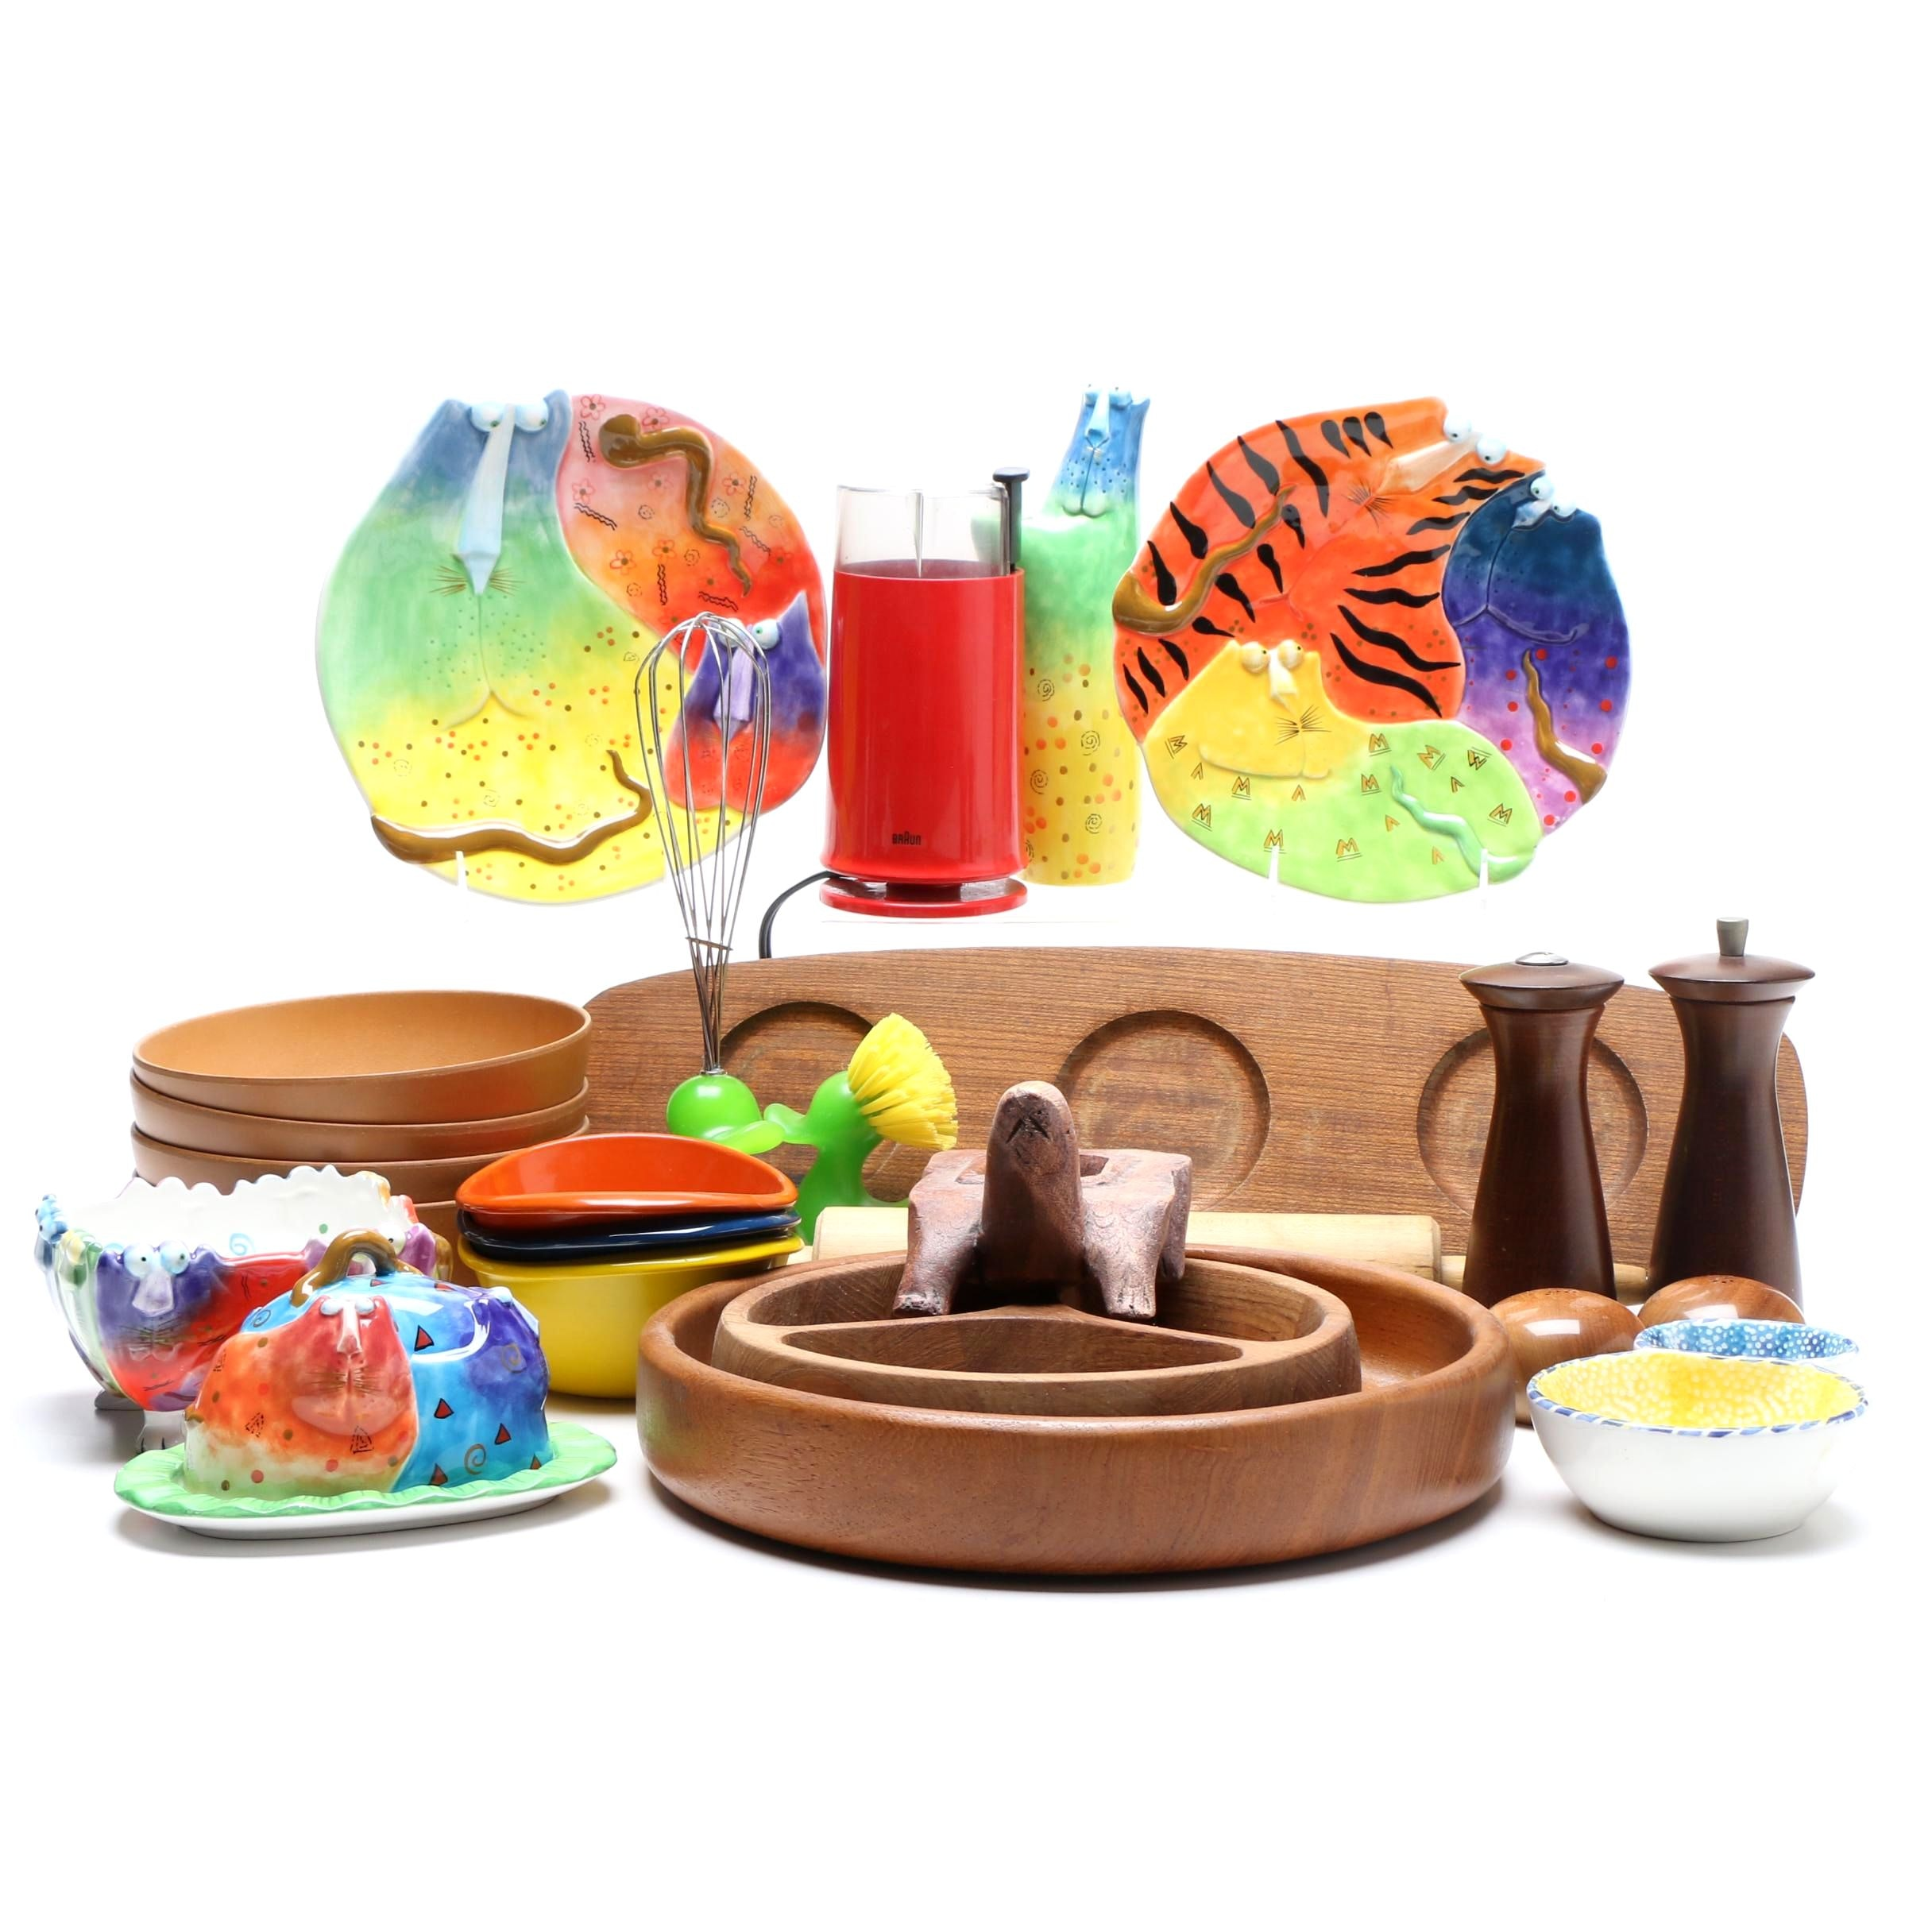 Assorted Tableware and Colorful Serveware Featuring Joy Cats